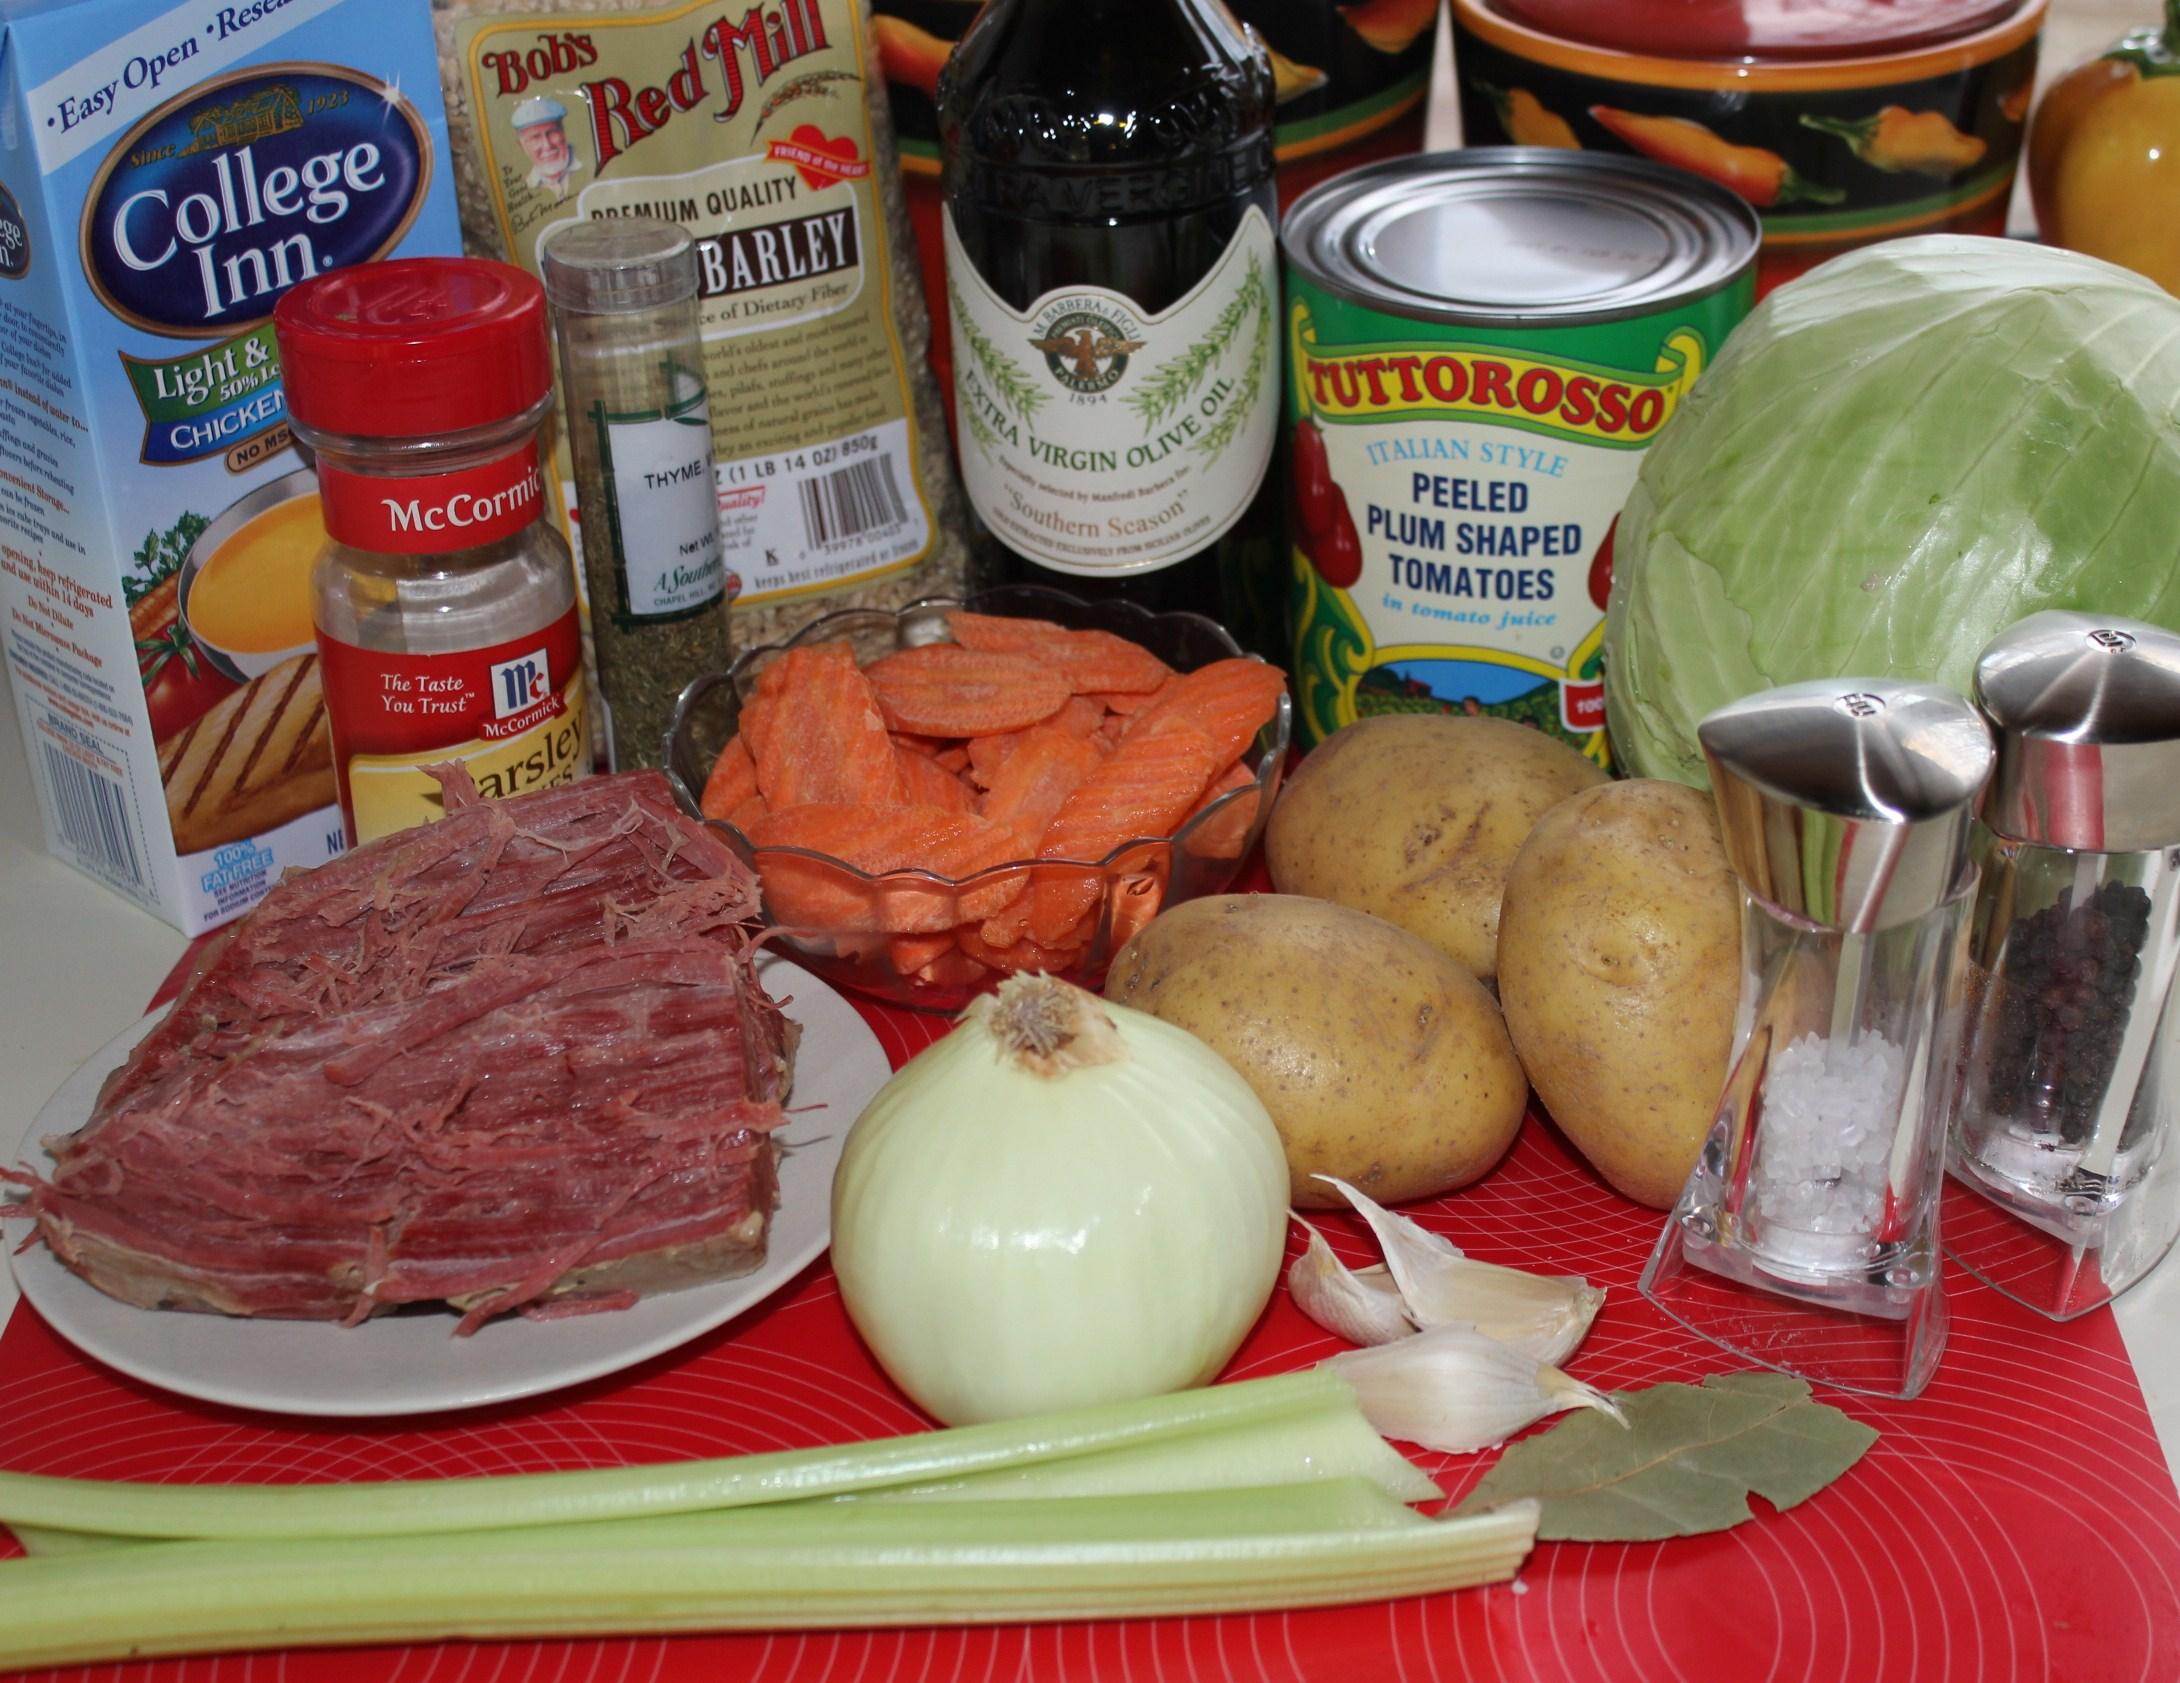 ... corned beef and cabbage corned beef and cabbage soup corned beef and